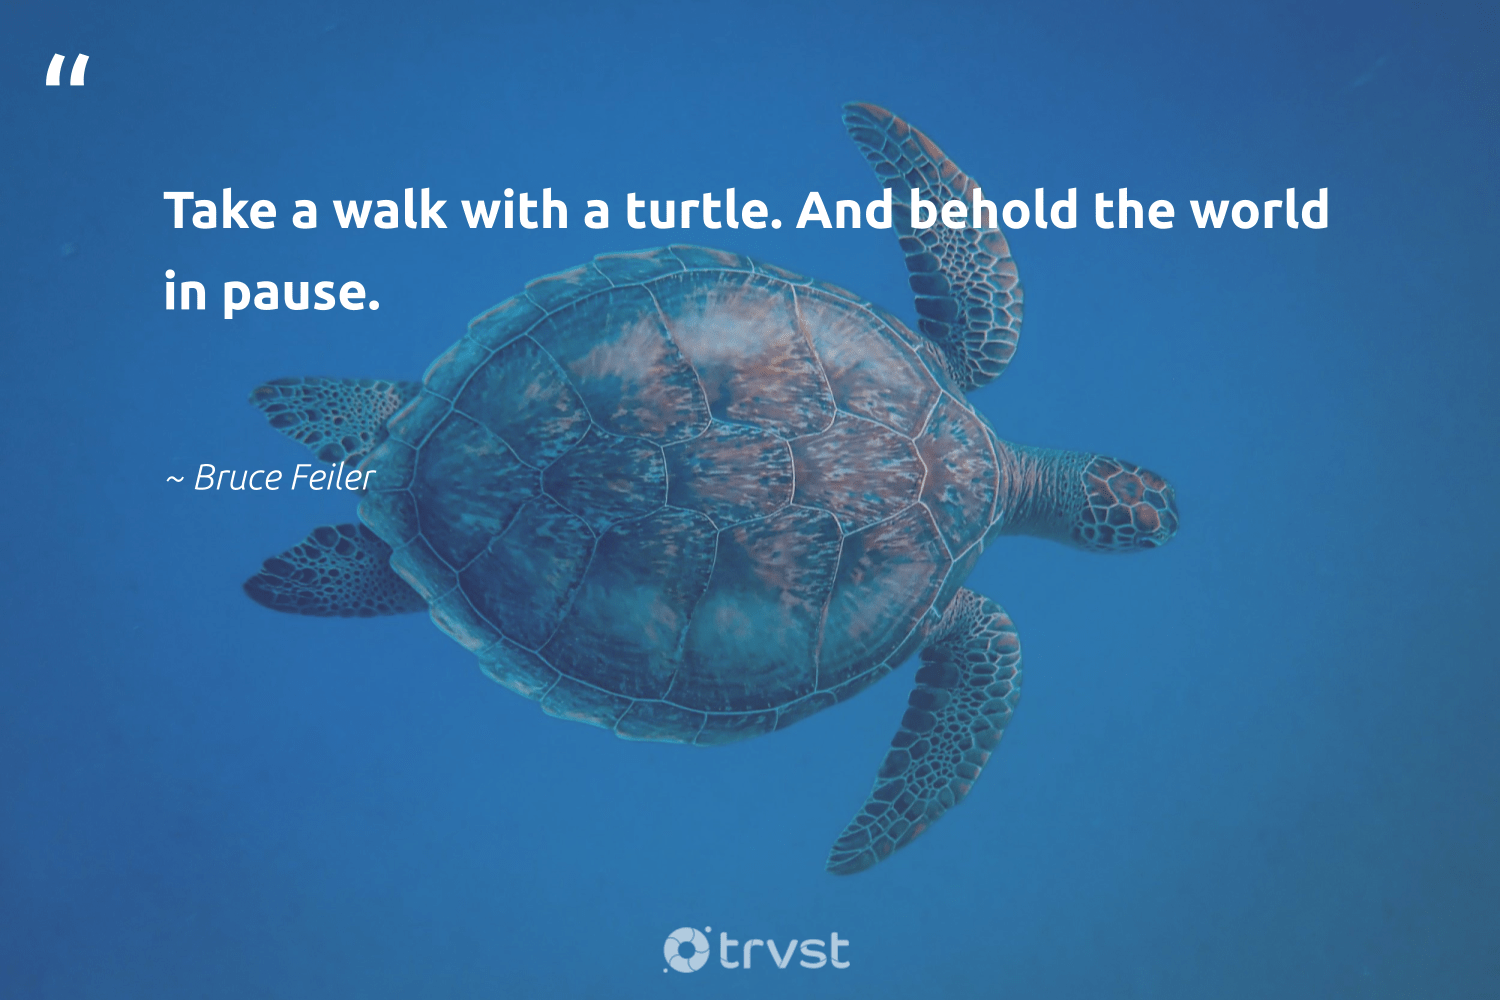 """Take a walk with a turtle. And behold the world in pause.""  - Bruce Feiler #trvst #quotes #turtle #wildlifeprotection #thinkgreen #savetheoceans #gogreen #perfectnature #collectiveaction #marinelife #ecoconscious #aquaticlife"